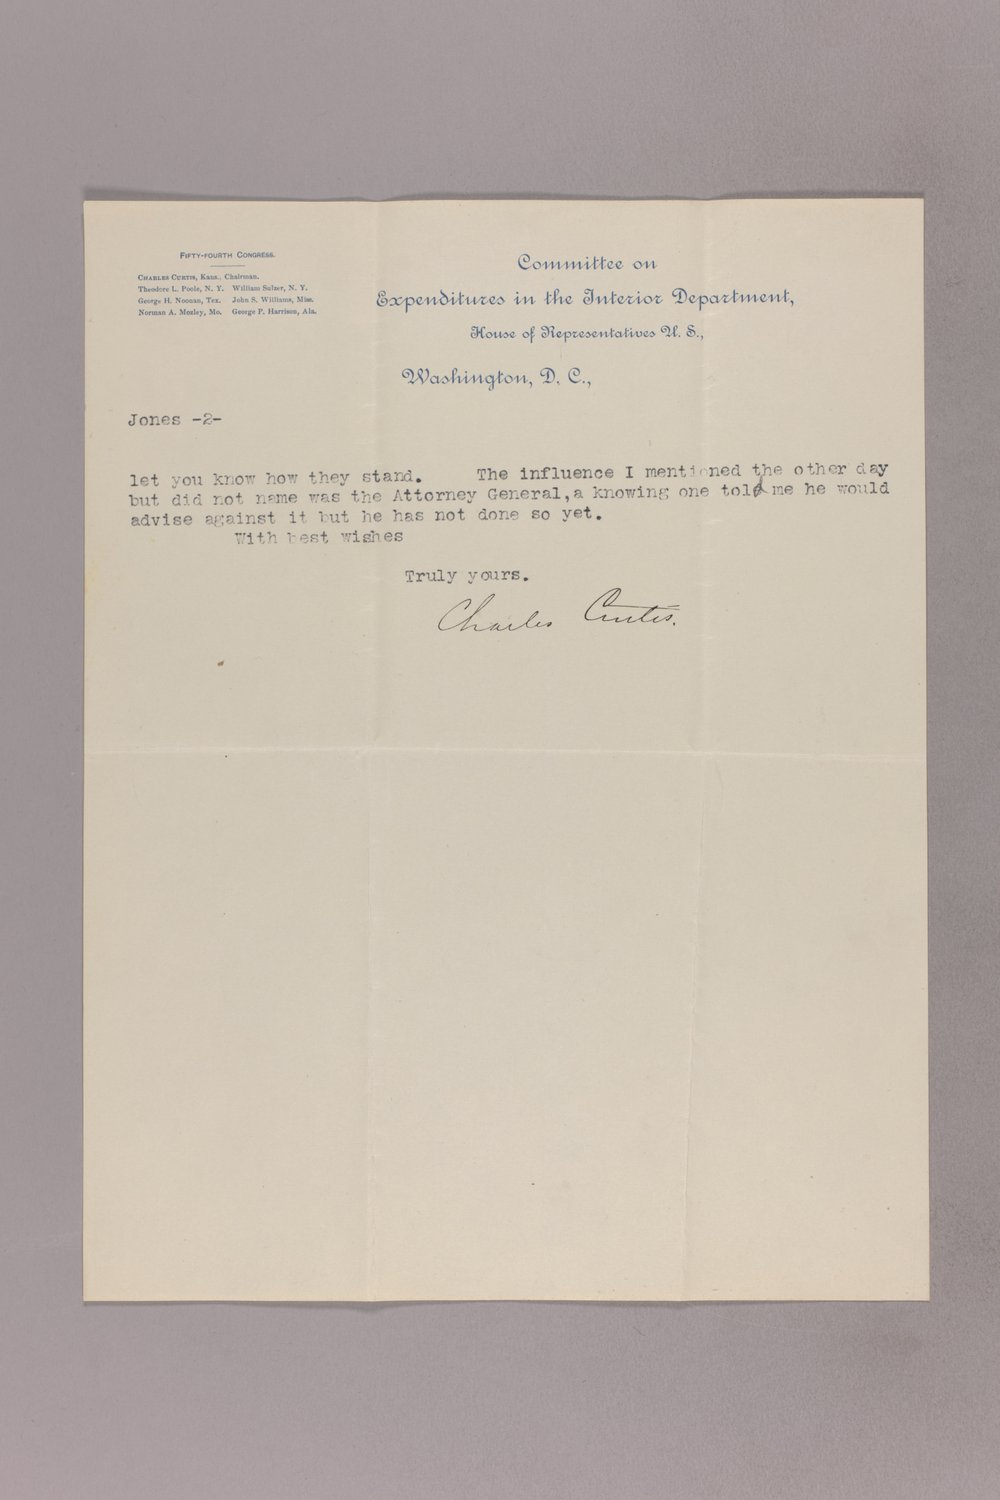 Charles Curtis correspondence, 1895-1896 - 10 March 04, 1896